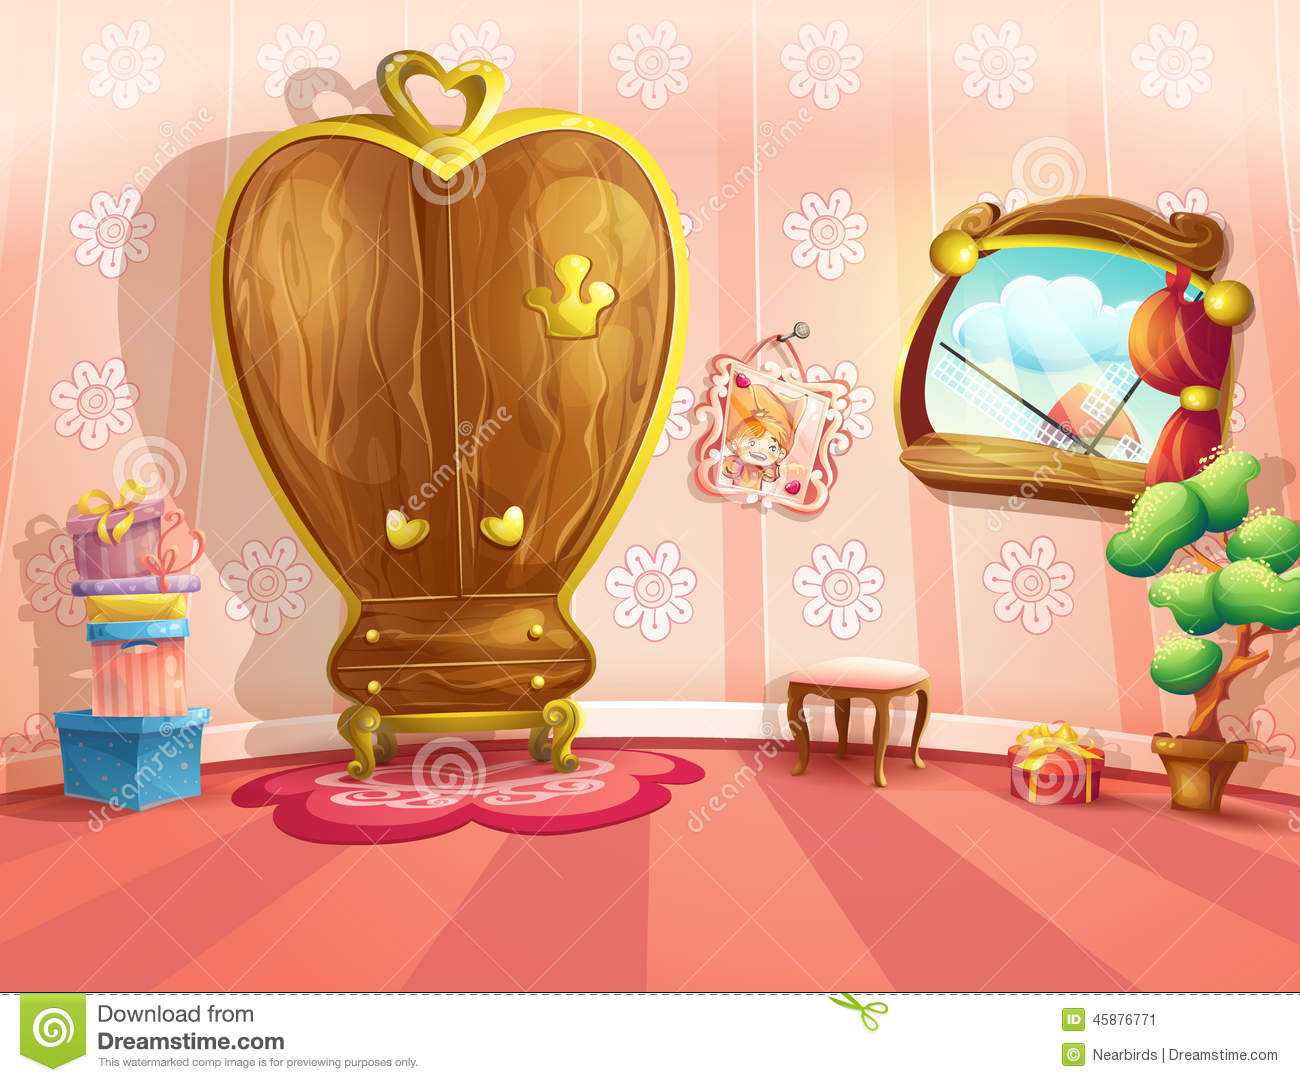 Boy And Girl In Room Illustration Of Princess Bedrooms In Cartoon Style Stock